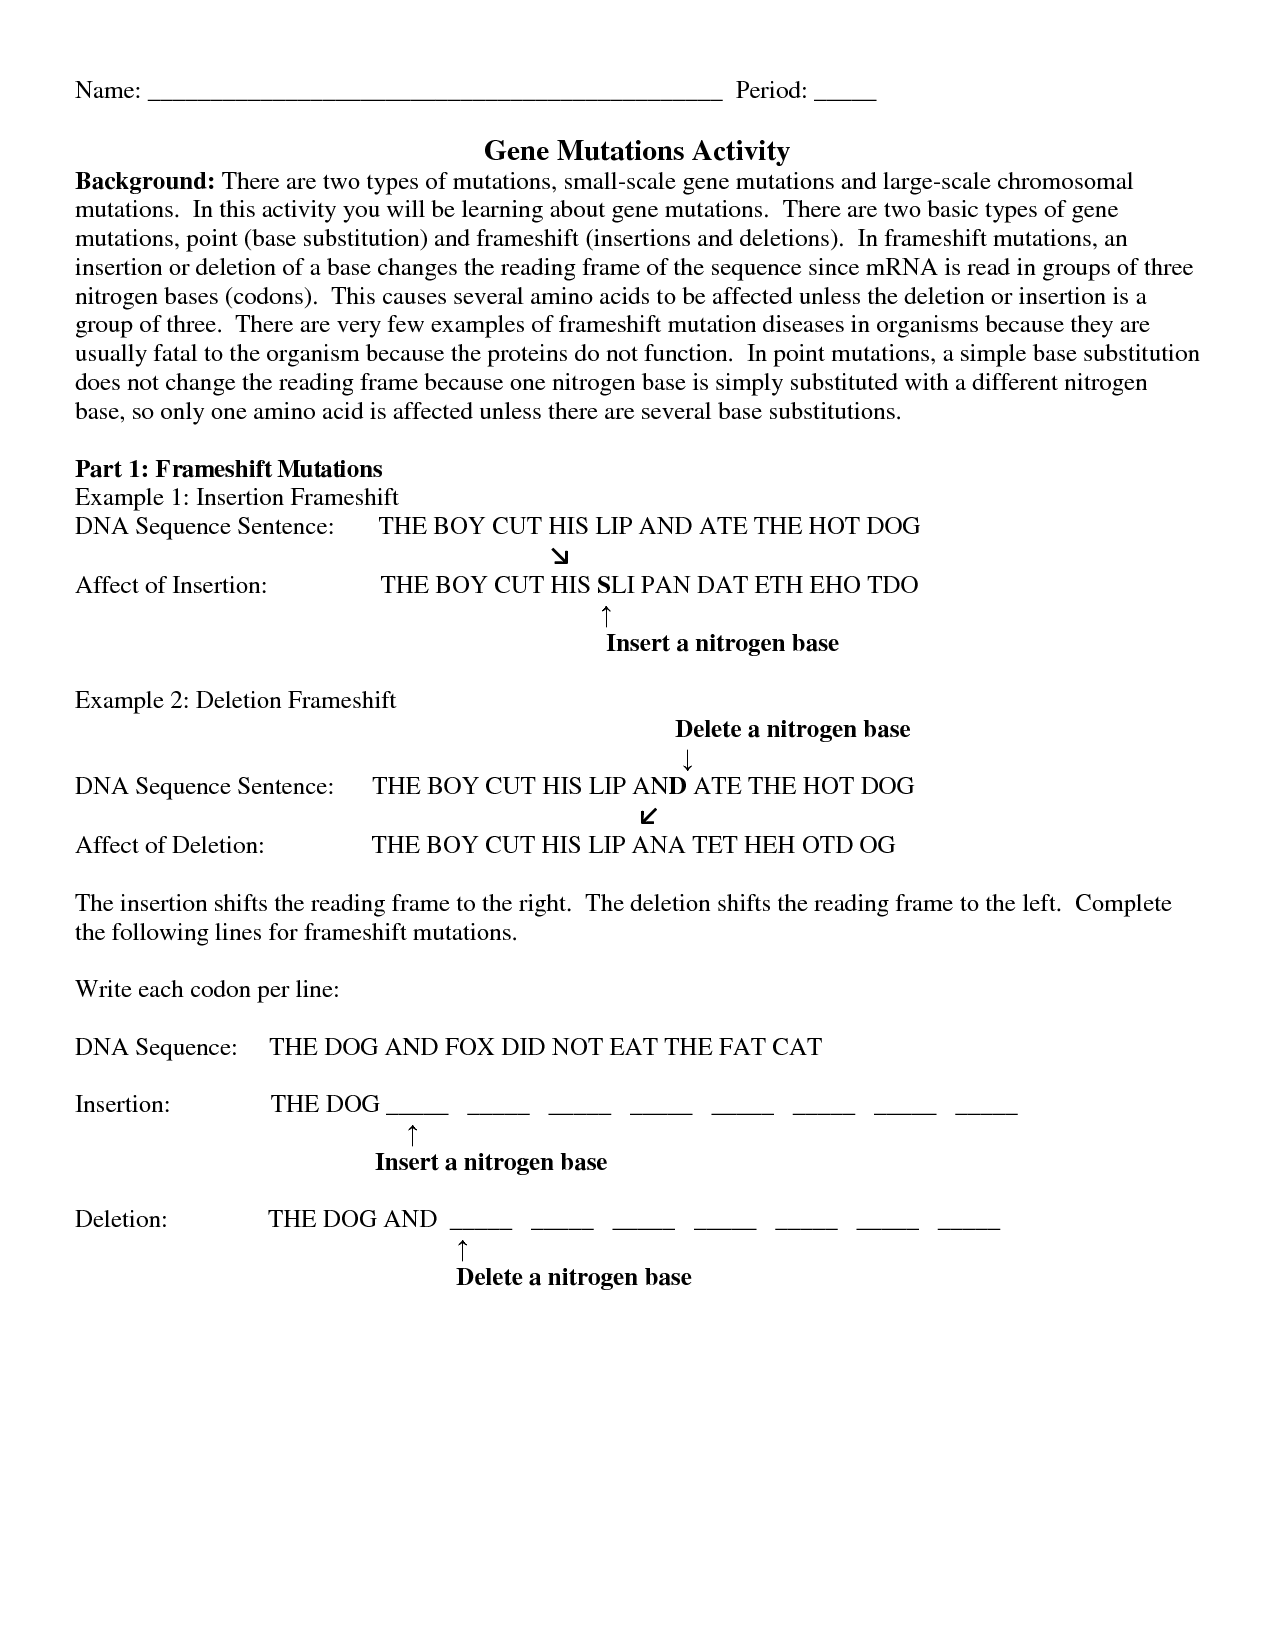 13 Best Images of Chromosomes And Genes Worksheet  DNA and Replication Worksheet Answers, Gene